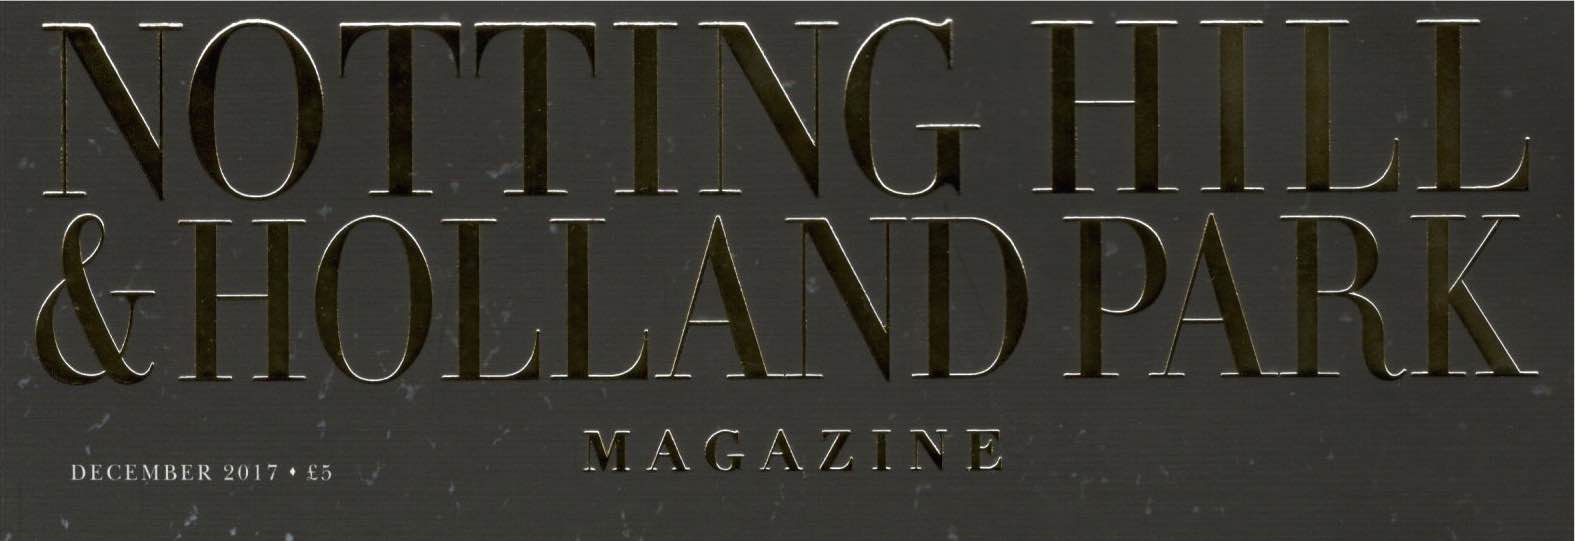 Notting Hill & Holland Park Magazine, December 2017